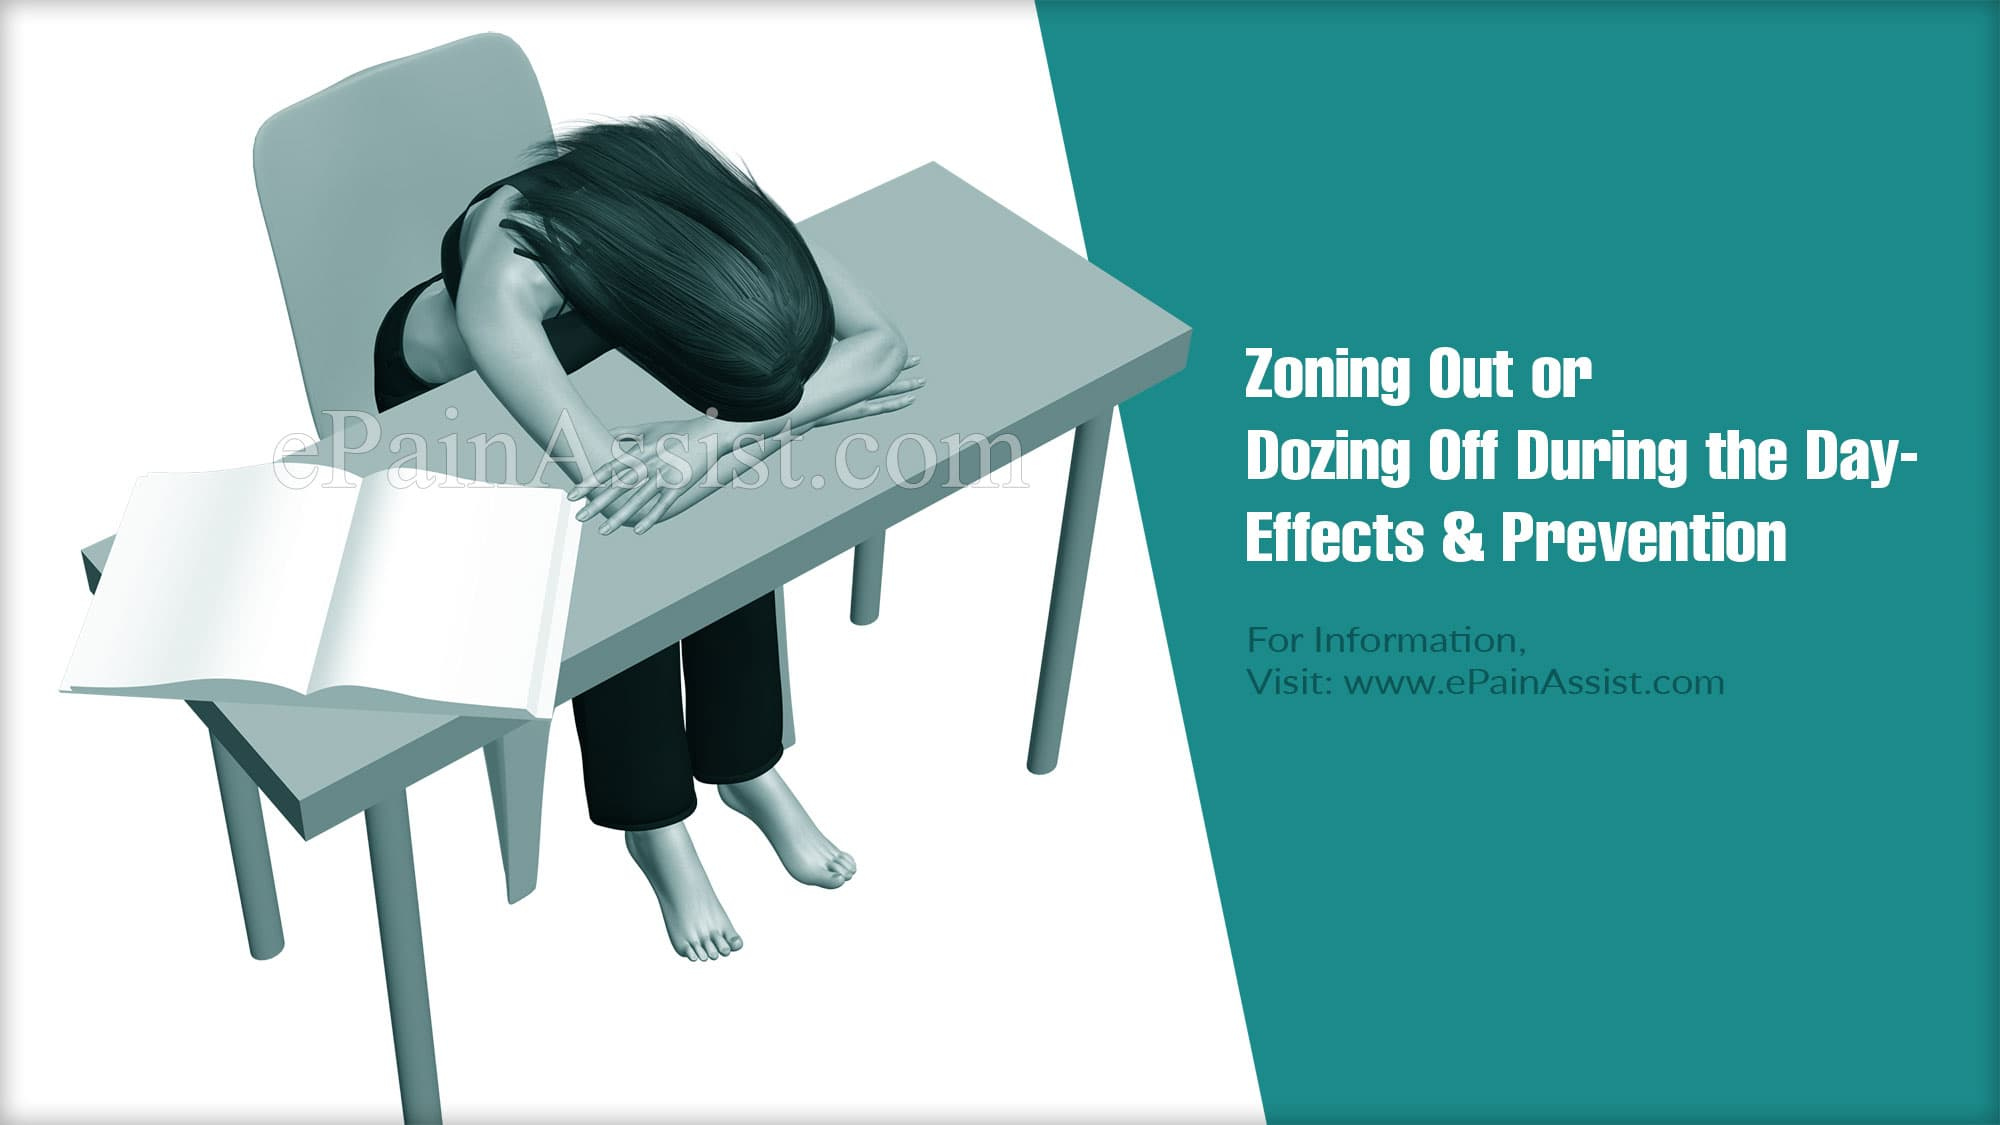 Zoning Out or Dozing Off During the Day: Effects & Prevention